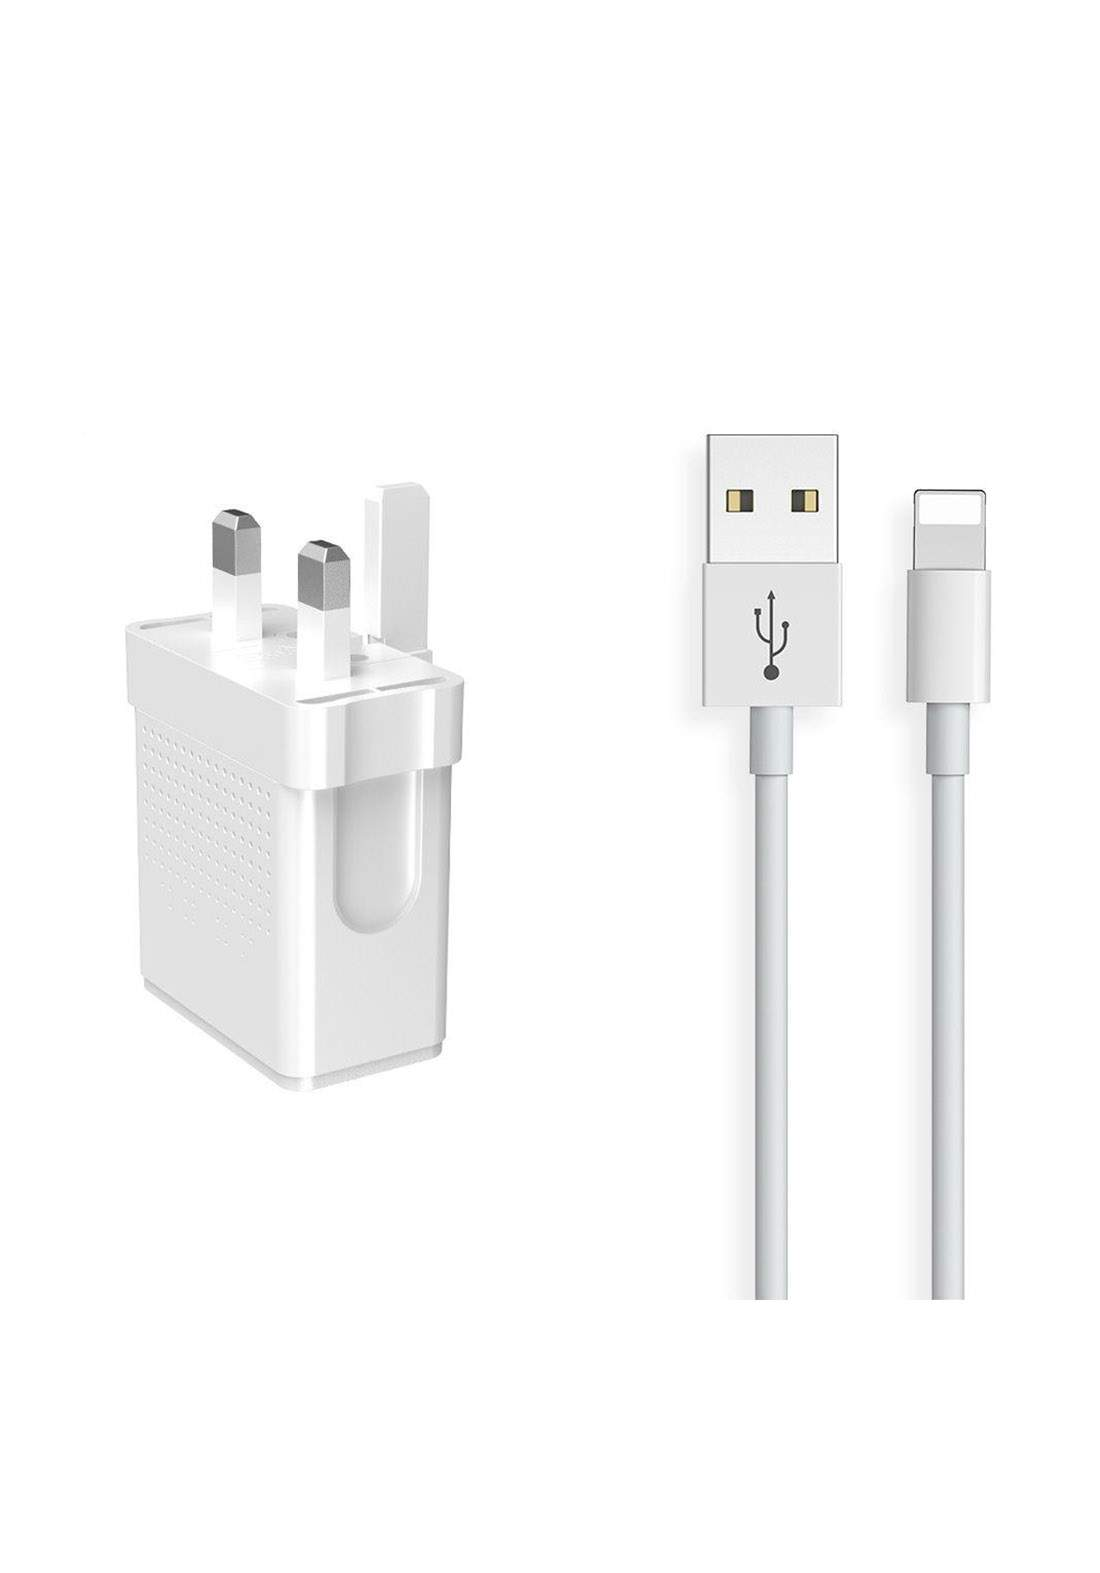 (3580)Mcdodo HCH05720 Dual USB Charger with Lightning Cable 1m - White شاحن